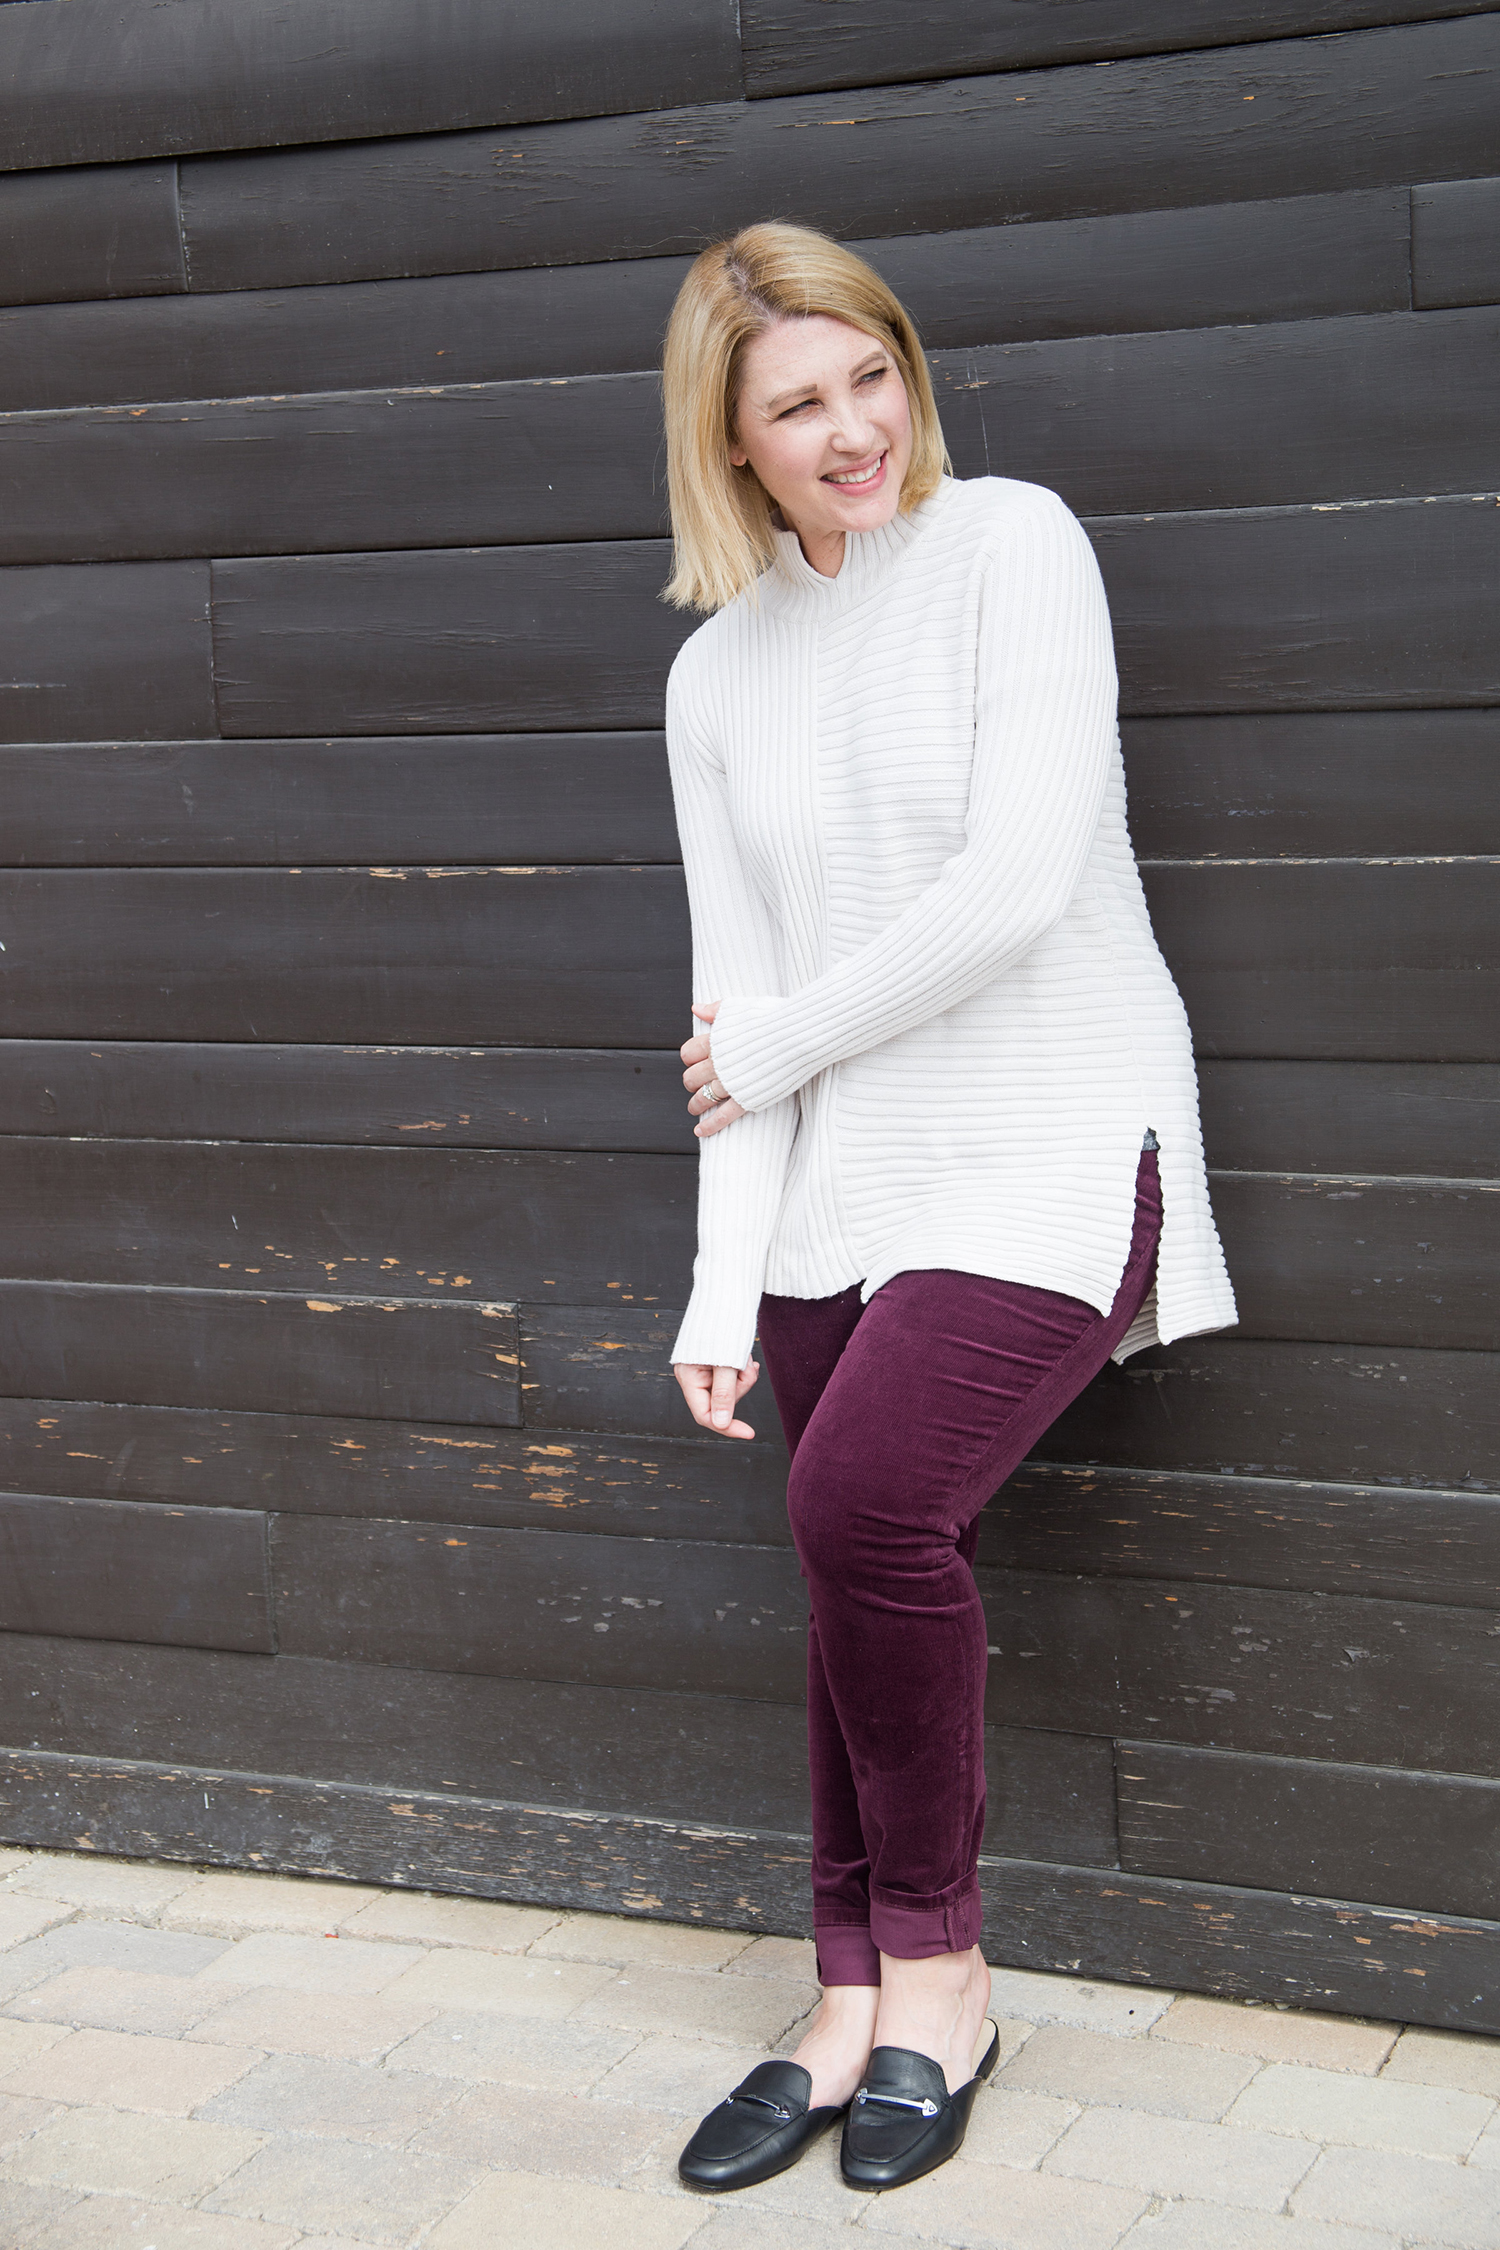 The best fall outfits for a pear shape body include these plum corduroy pants, this white sweater, and these loafer mules!